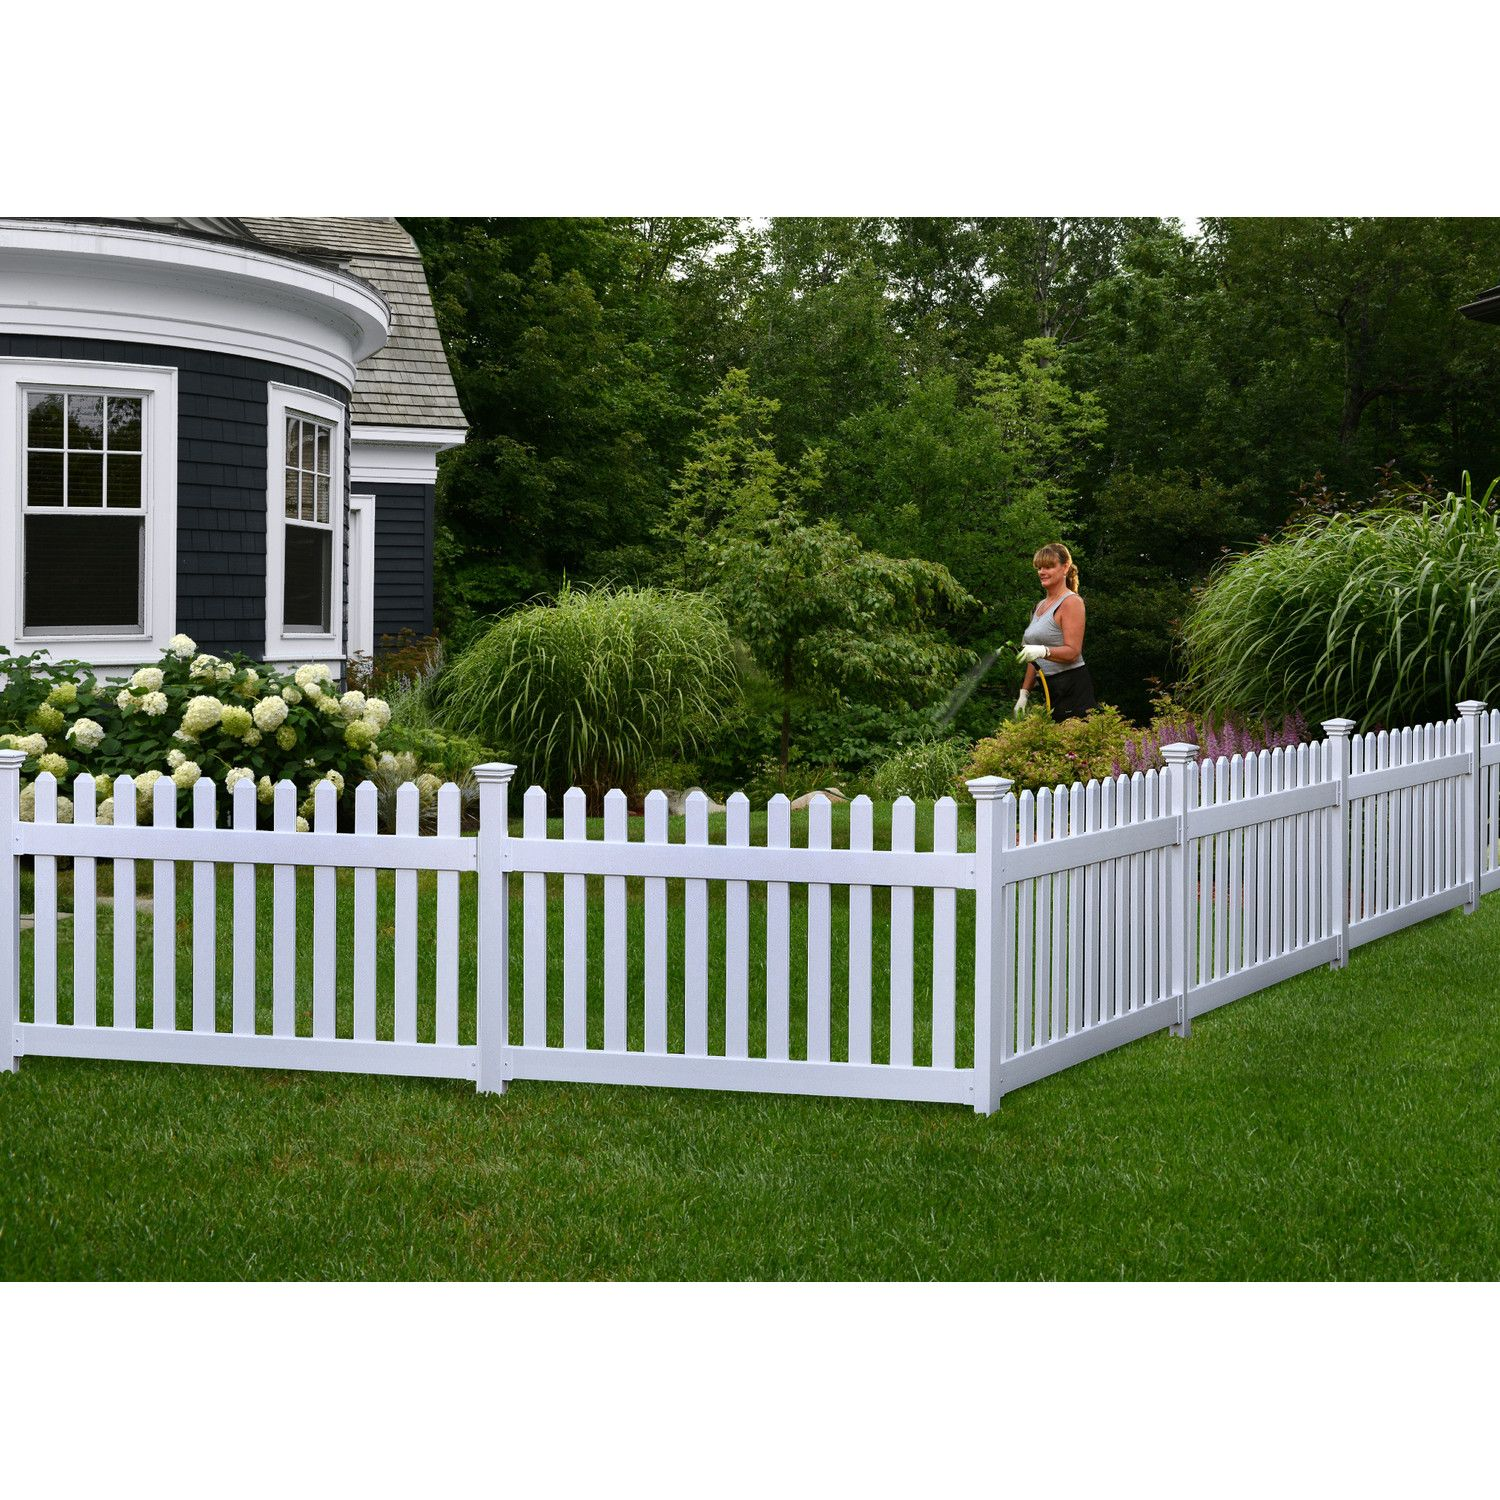 White Picket Fence is DONE